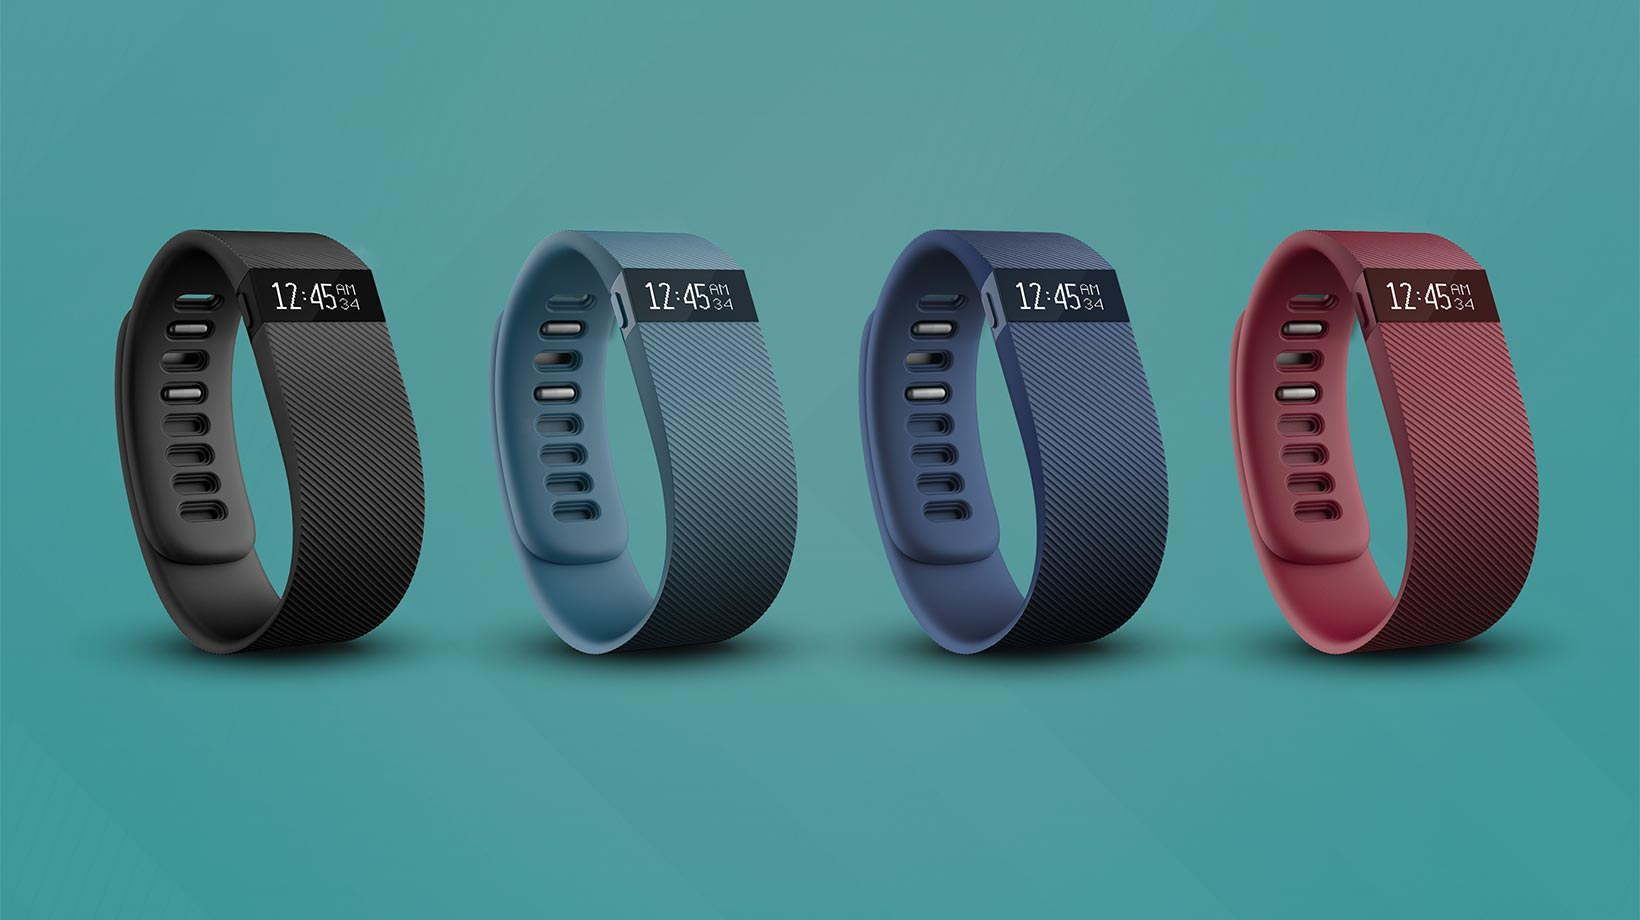 Fitbit Charge review: An improved band, but lacking heart rate